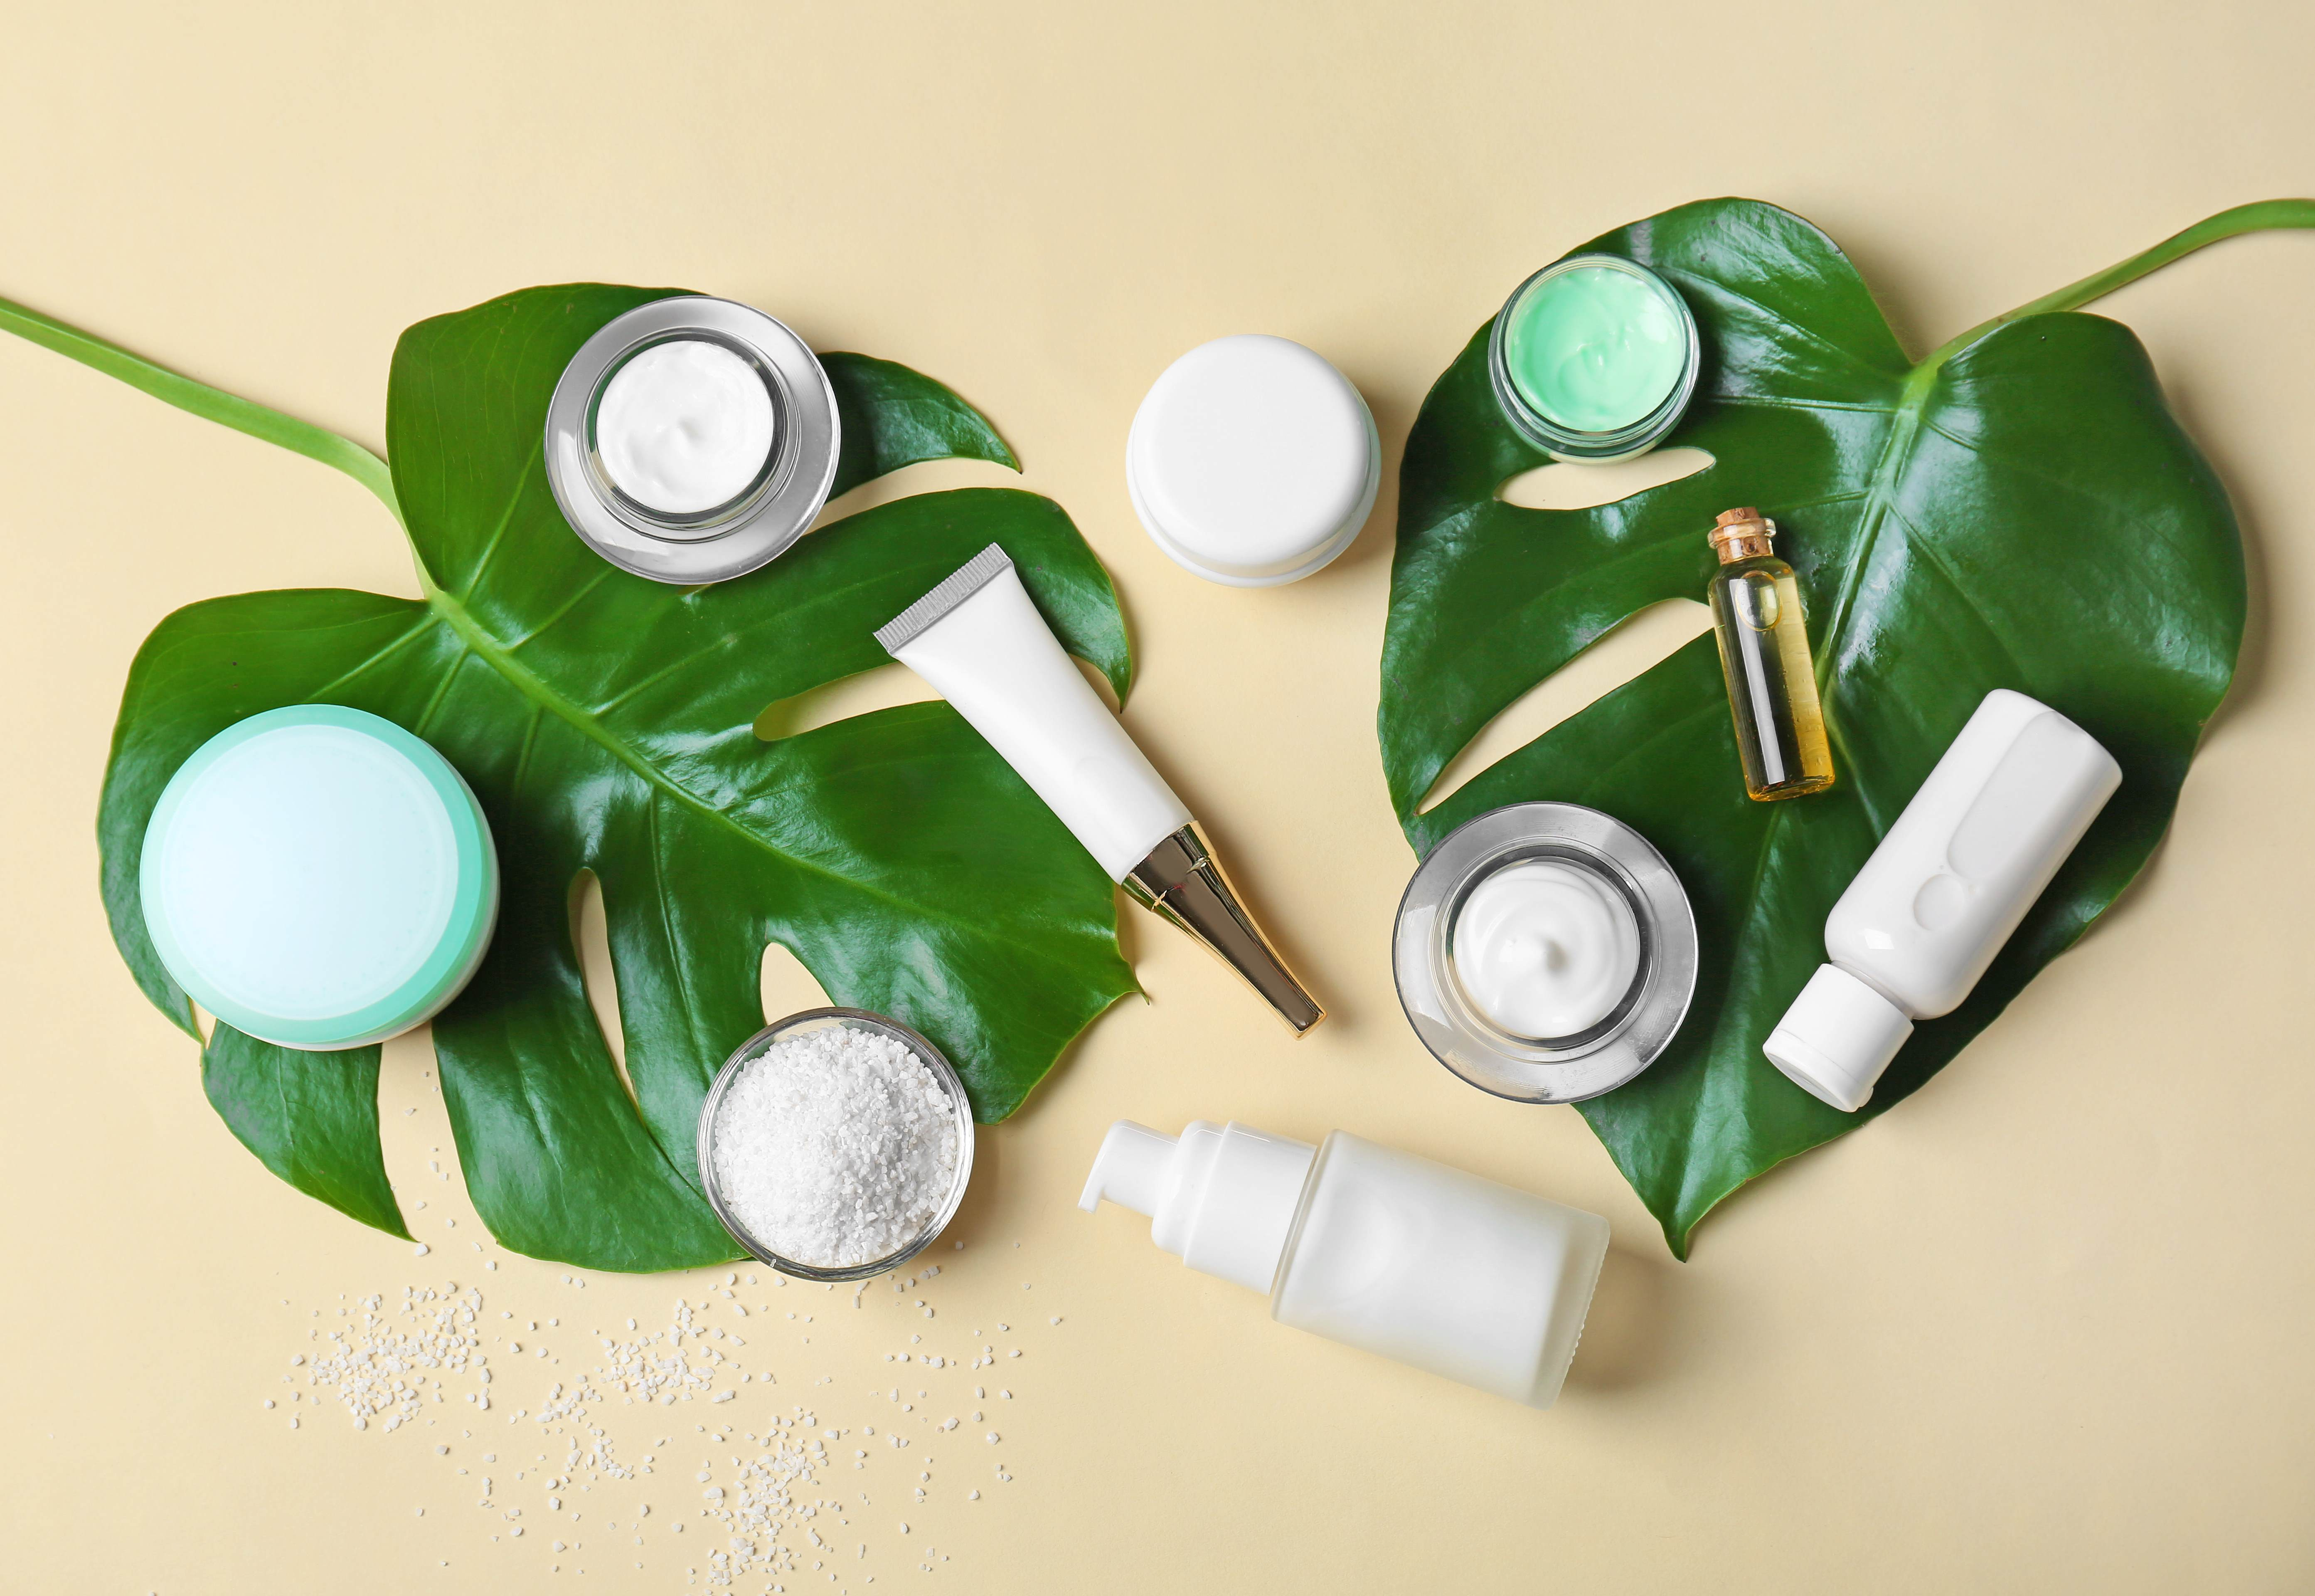 Personal care products in white pots placed on two large green leaves on a yellow background